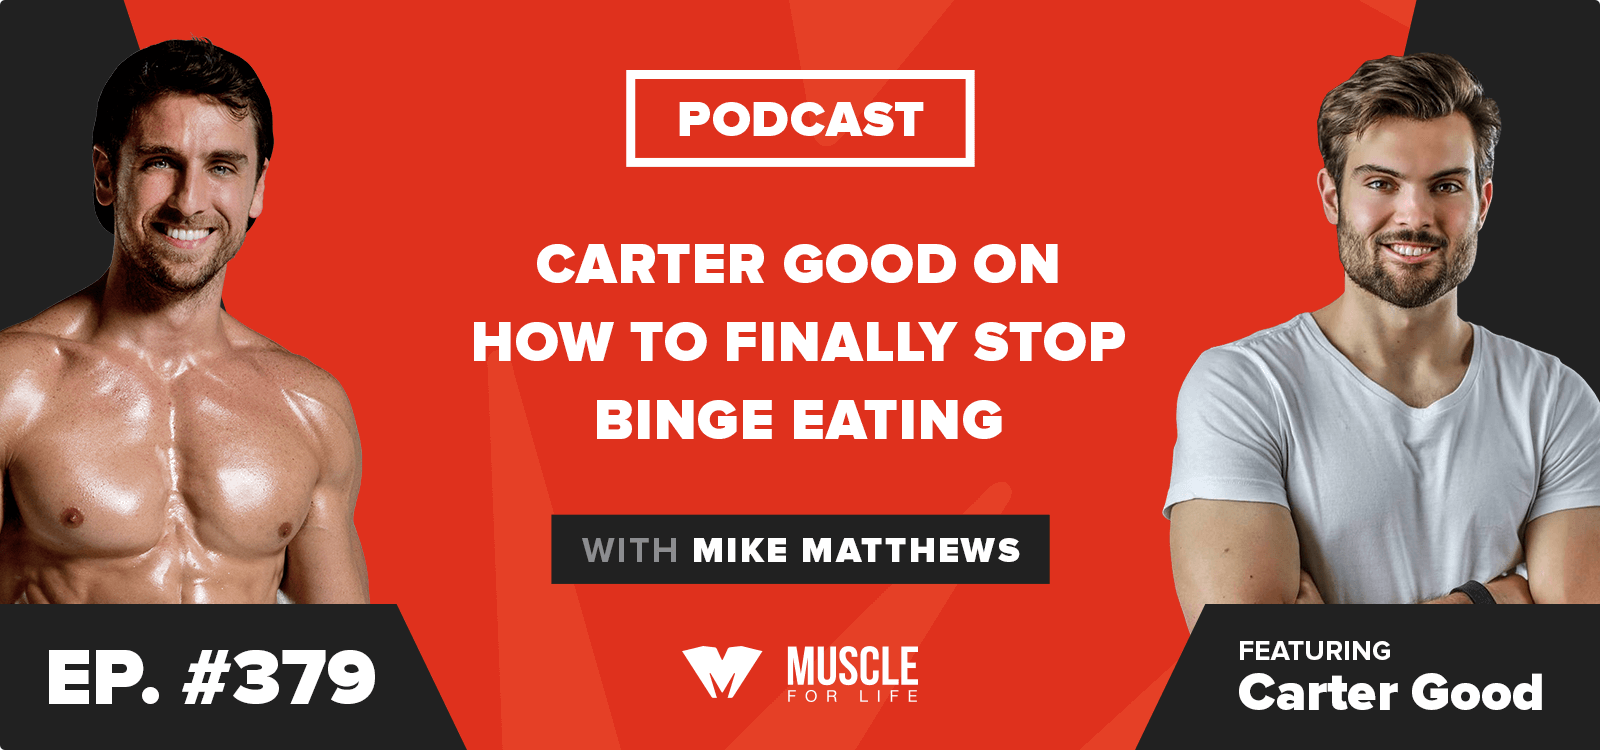 Carter Good on How to Finally Stop Binge Eating